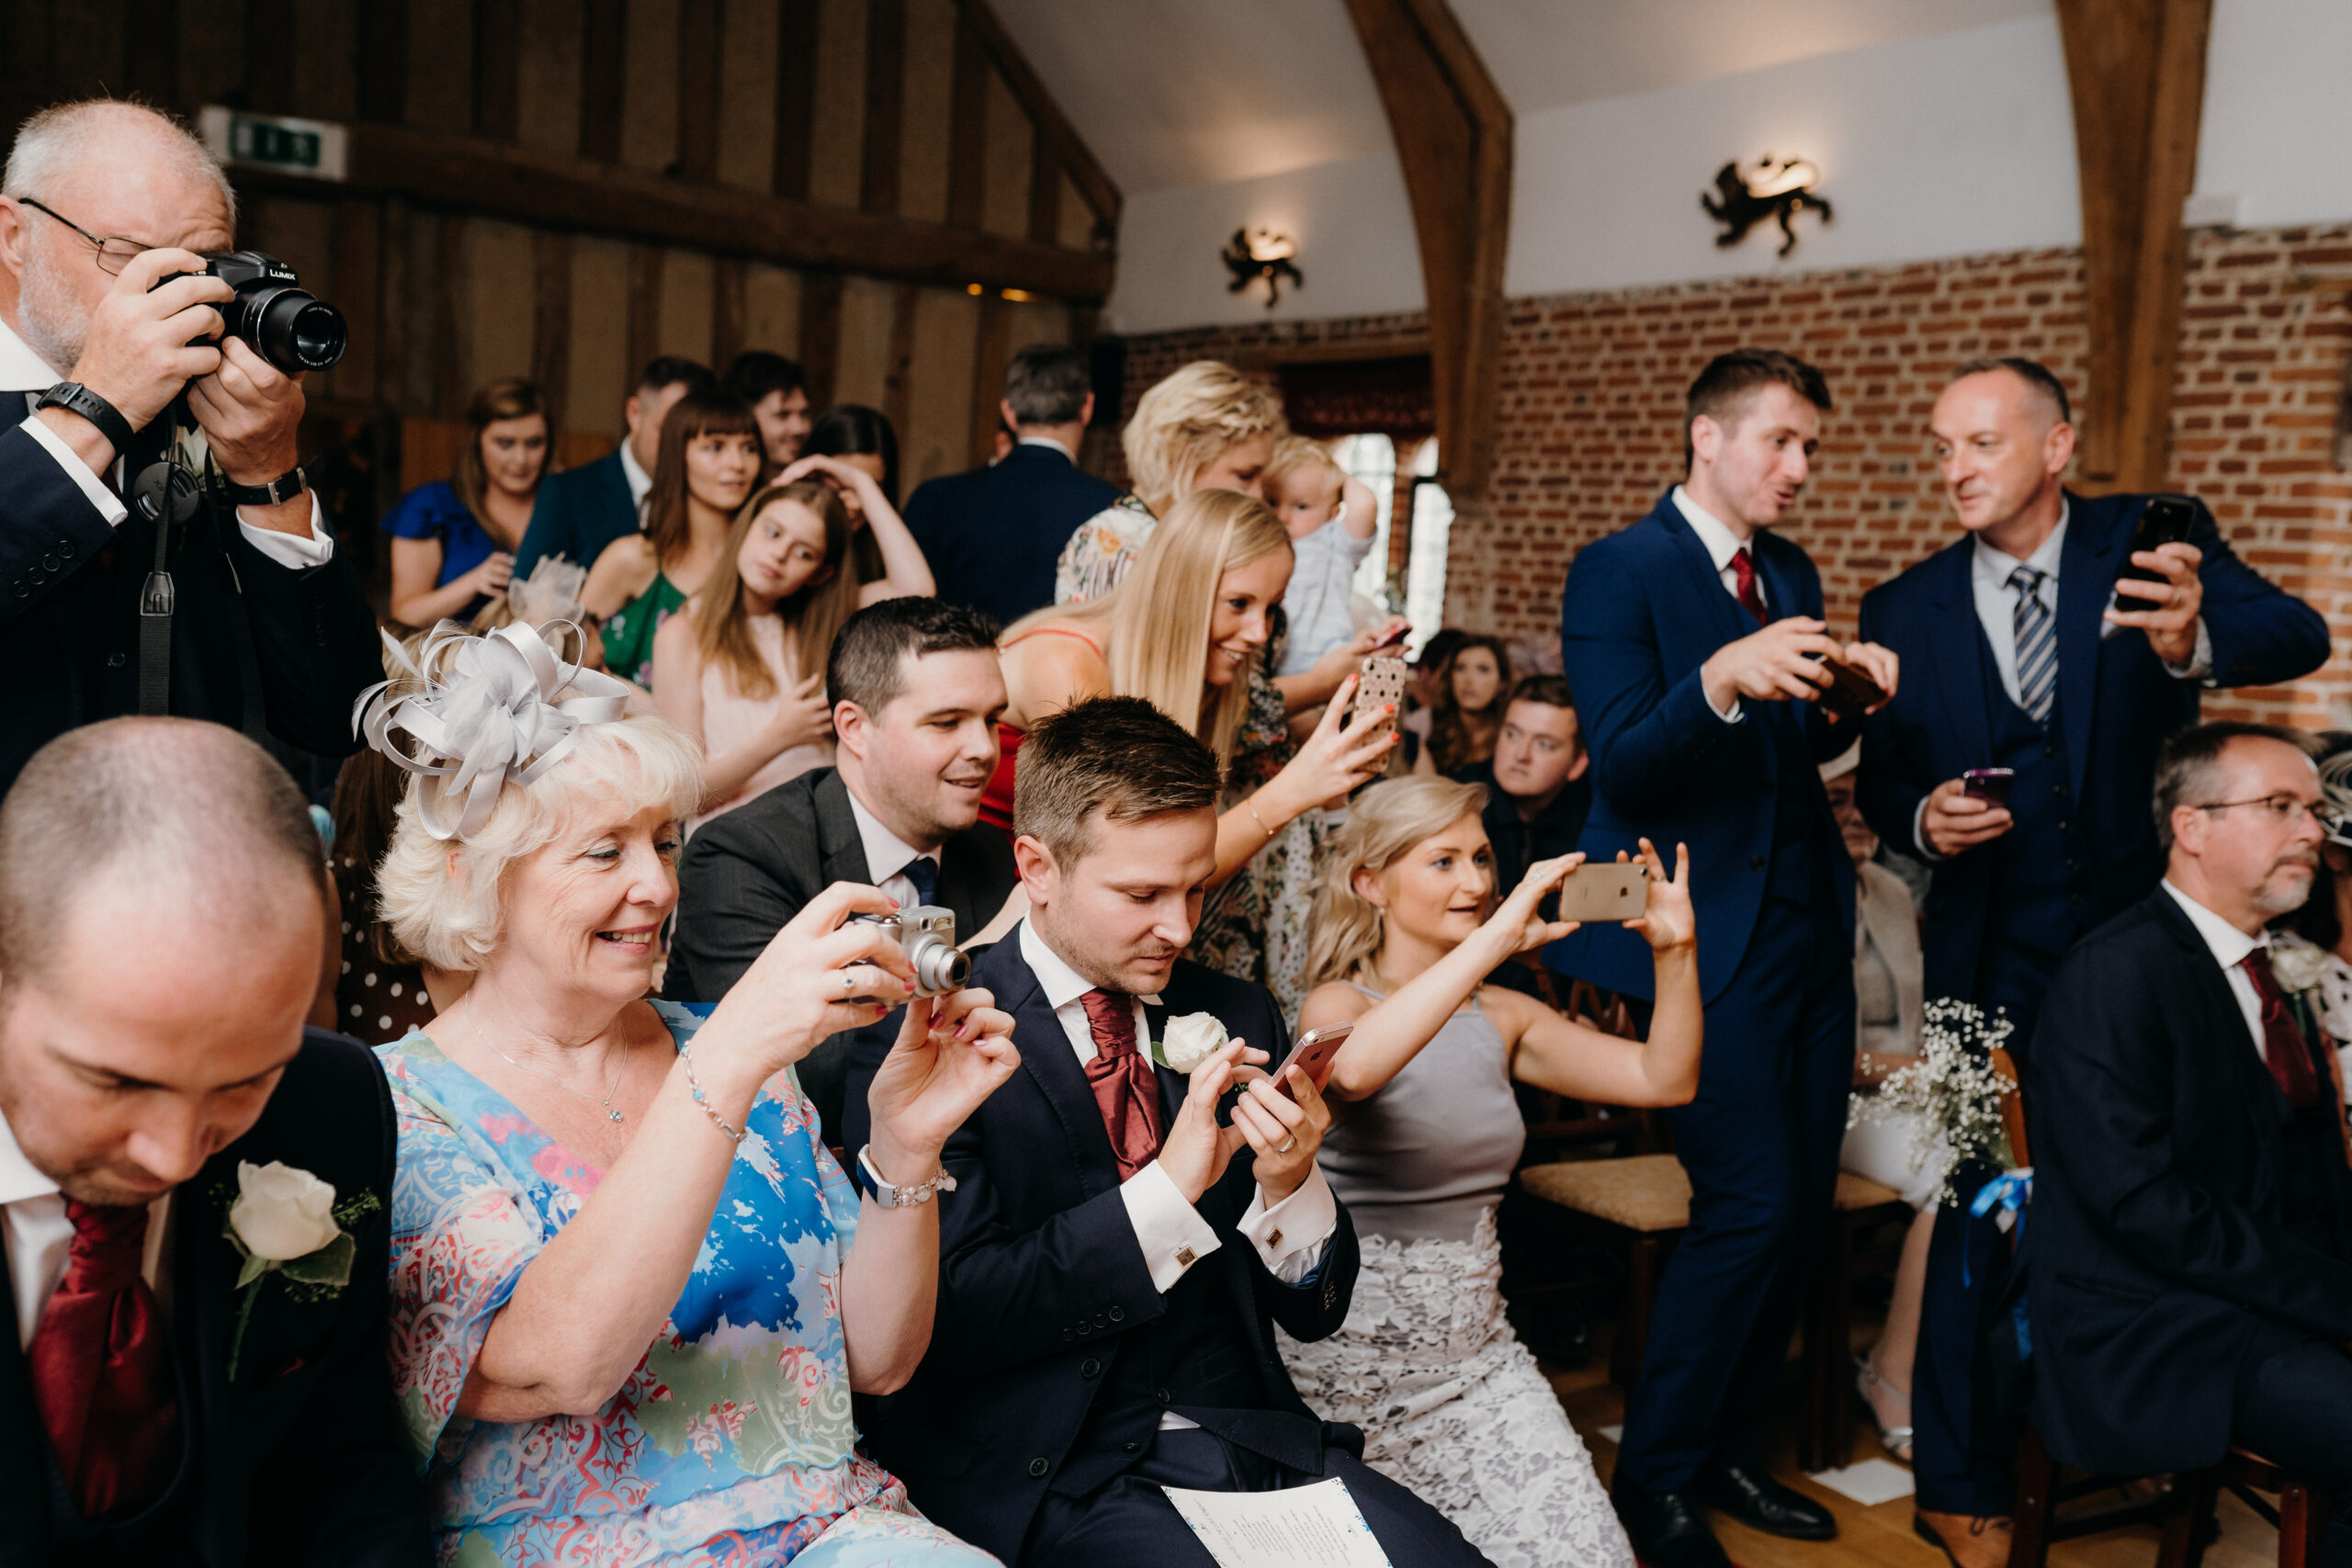 Wedding guests taking a photo of the bride and groom